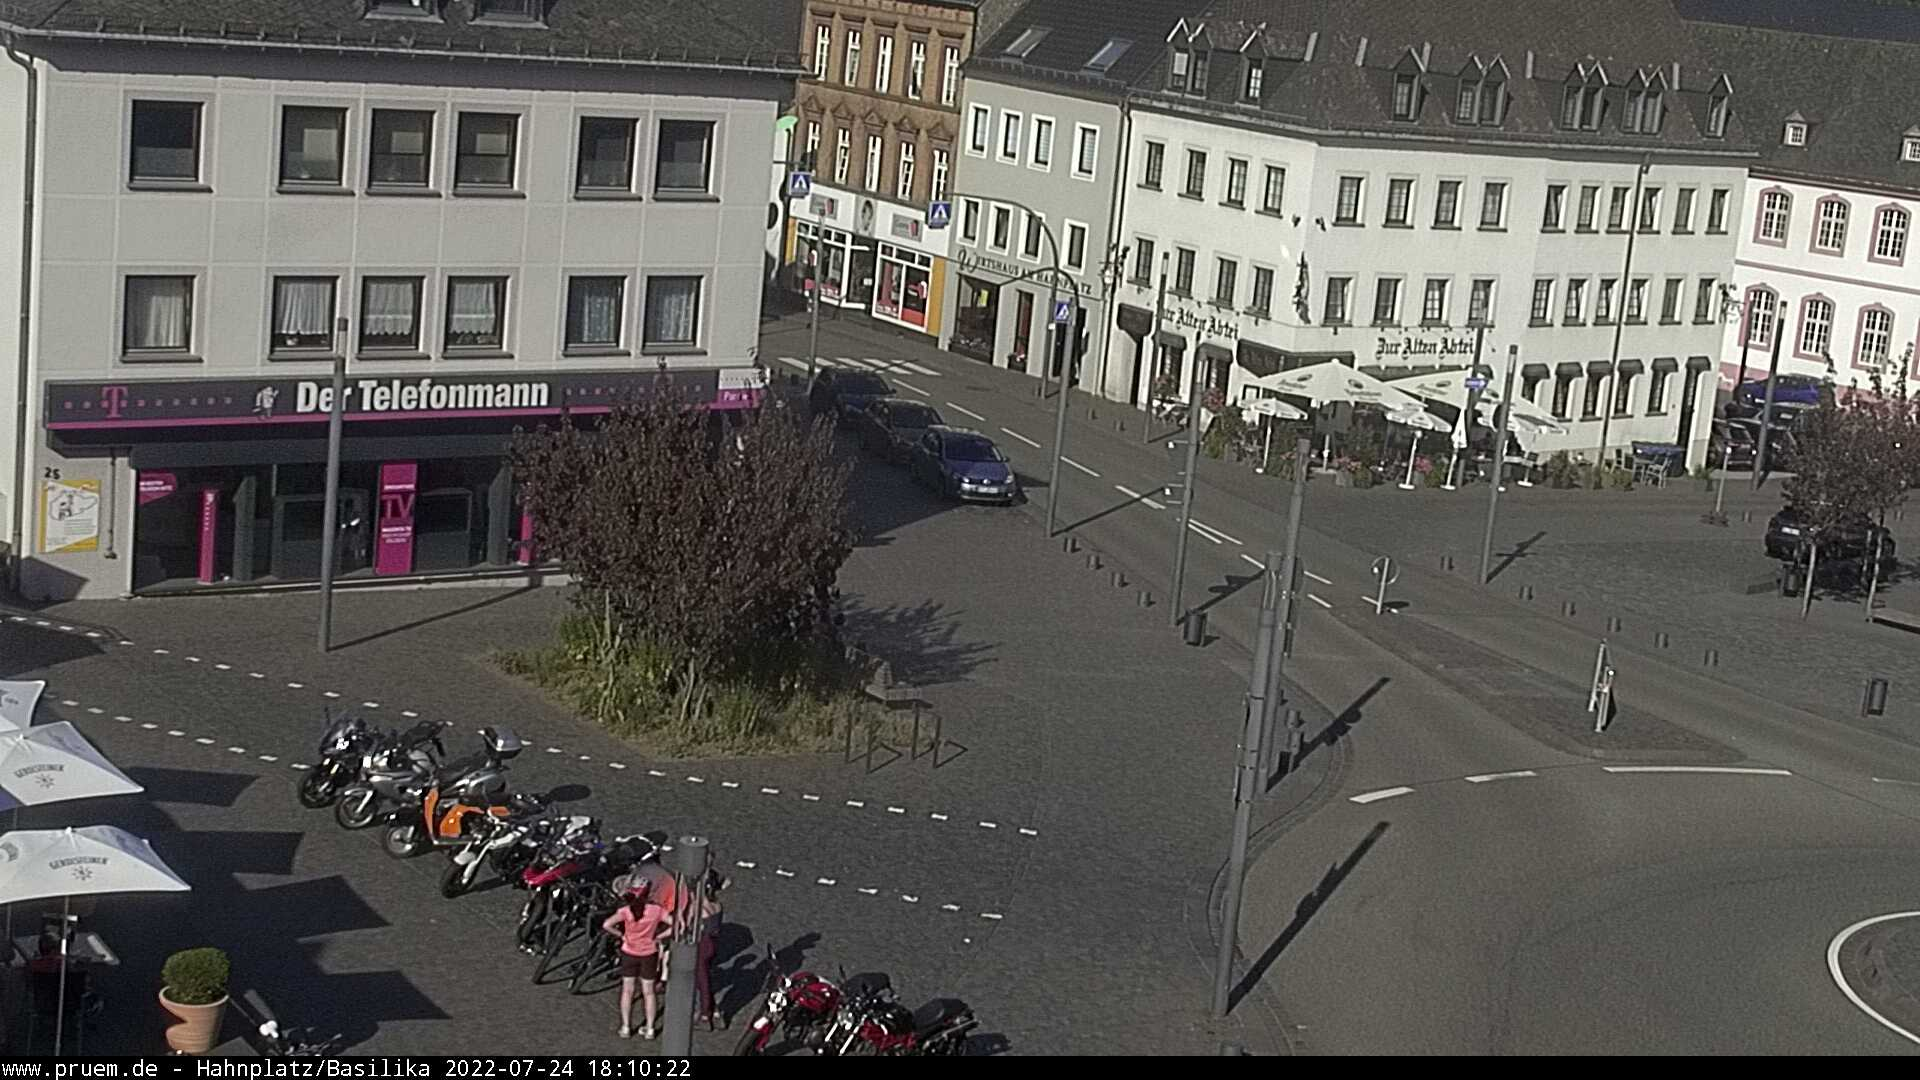 Webcam Hahnplatz 2